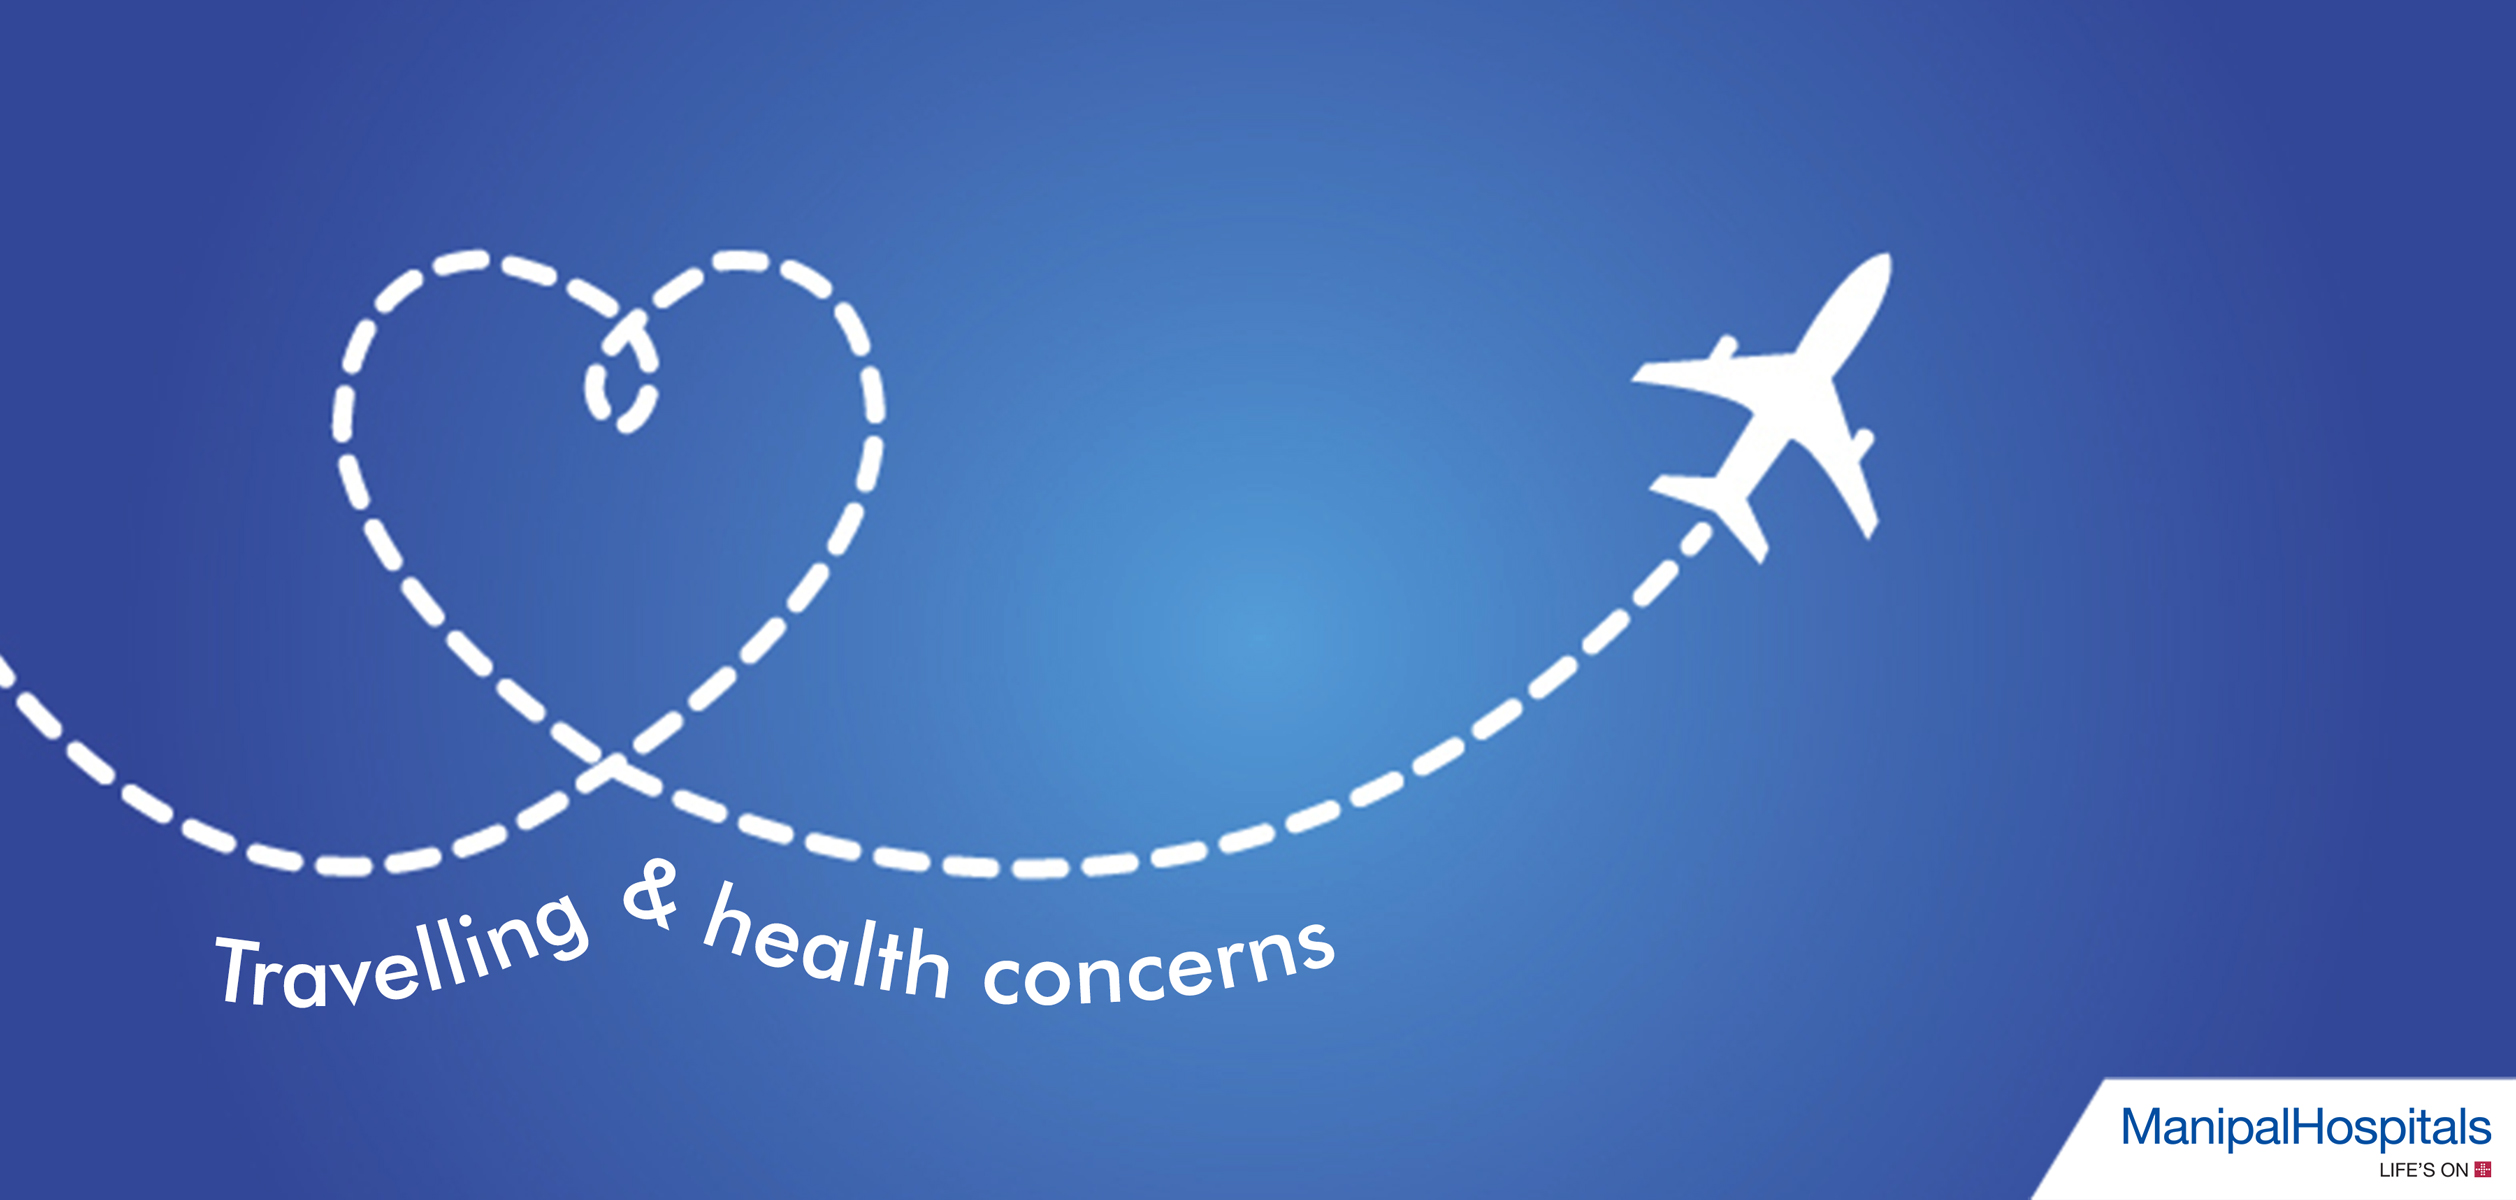 Travelling and Health Concerns